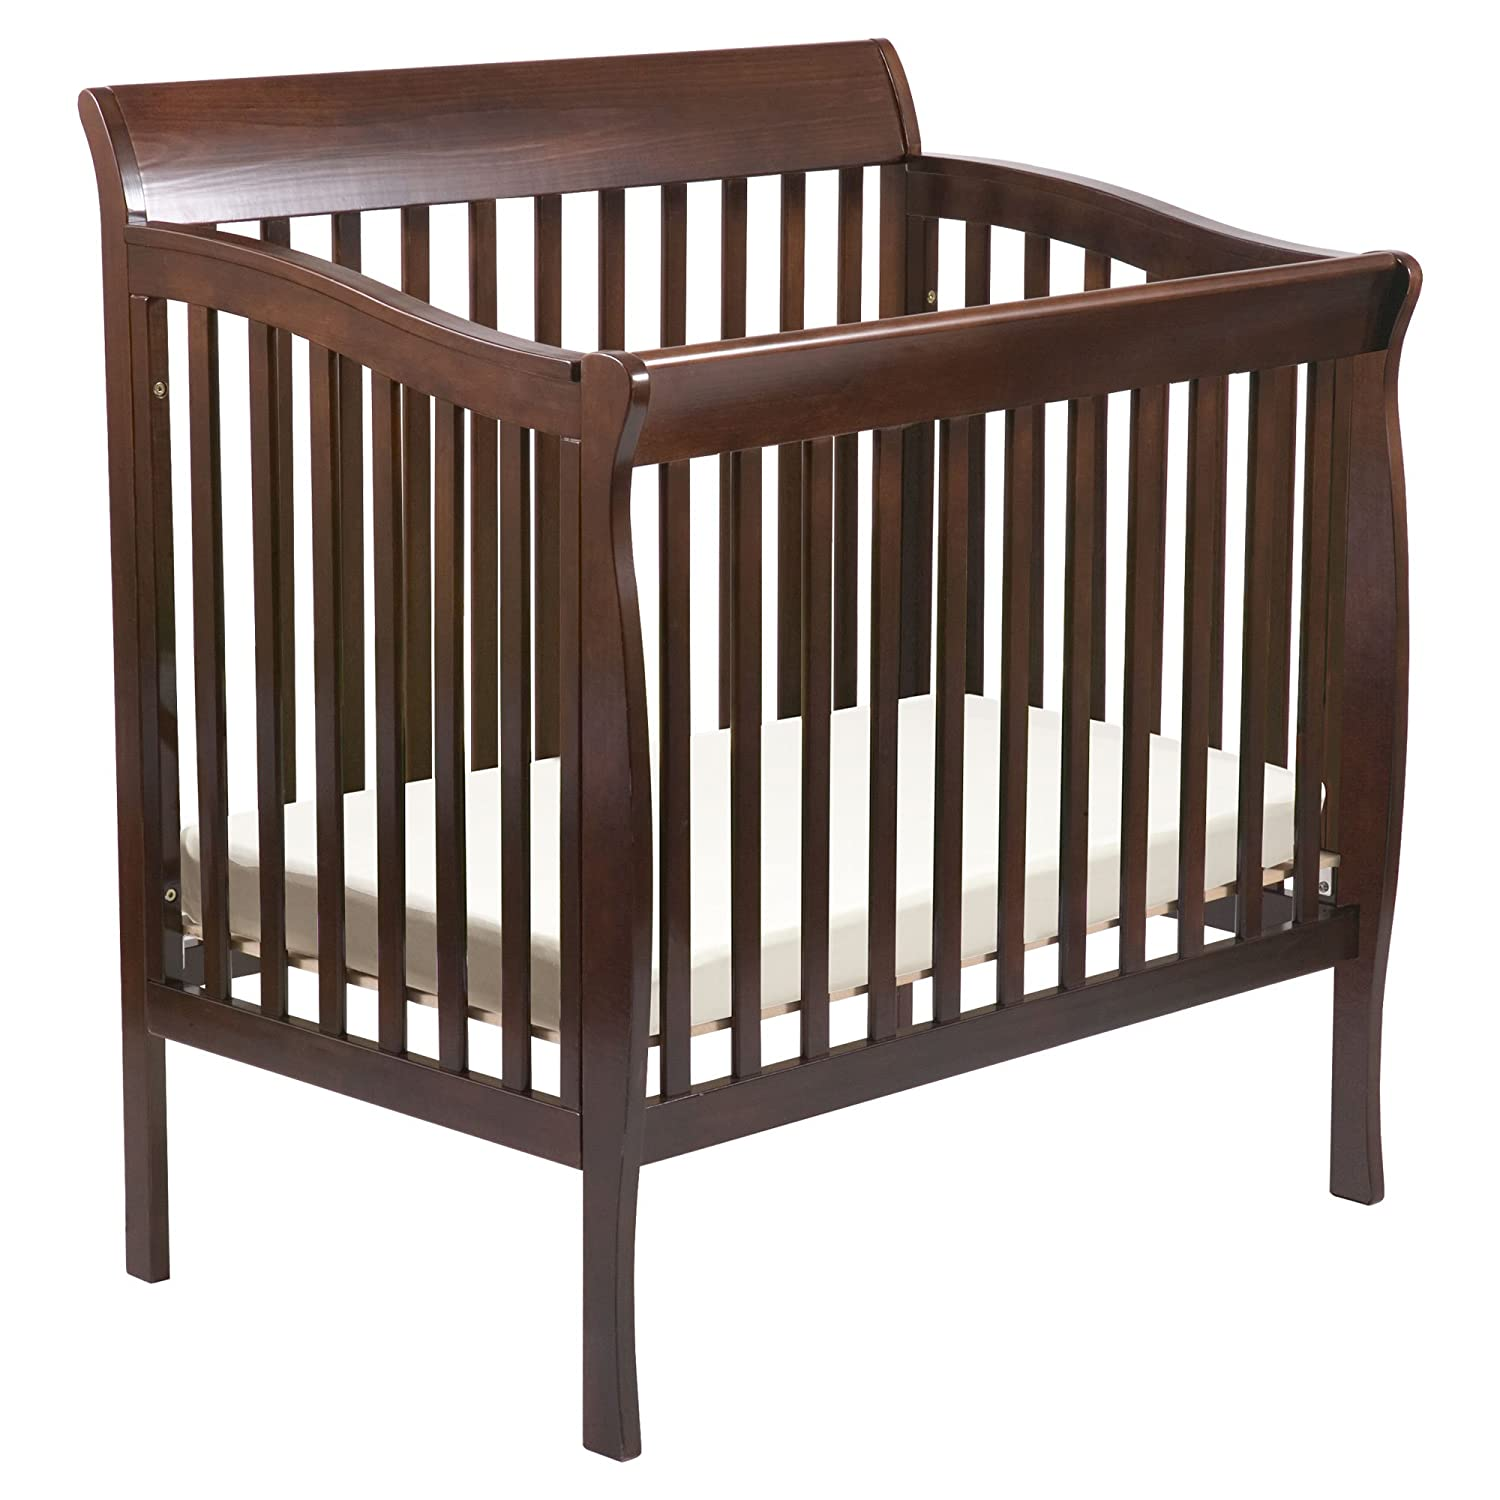 cribs changing collections mini crib bedding r tables us recall bed sets exciting walmart searr tent delta toys baby cambridge simplicity new born nursery babies bassett furniture